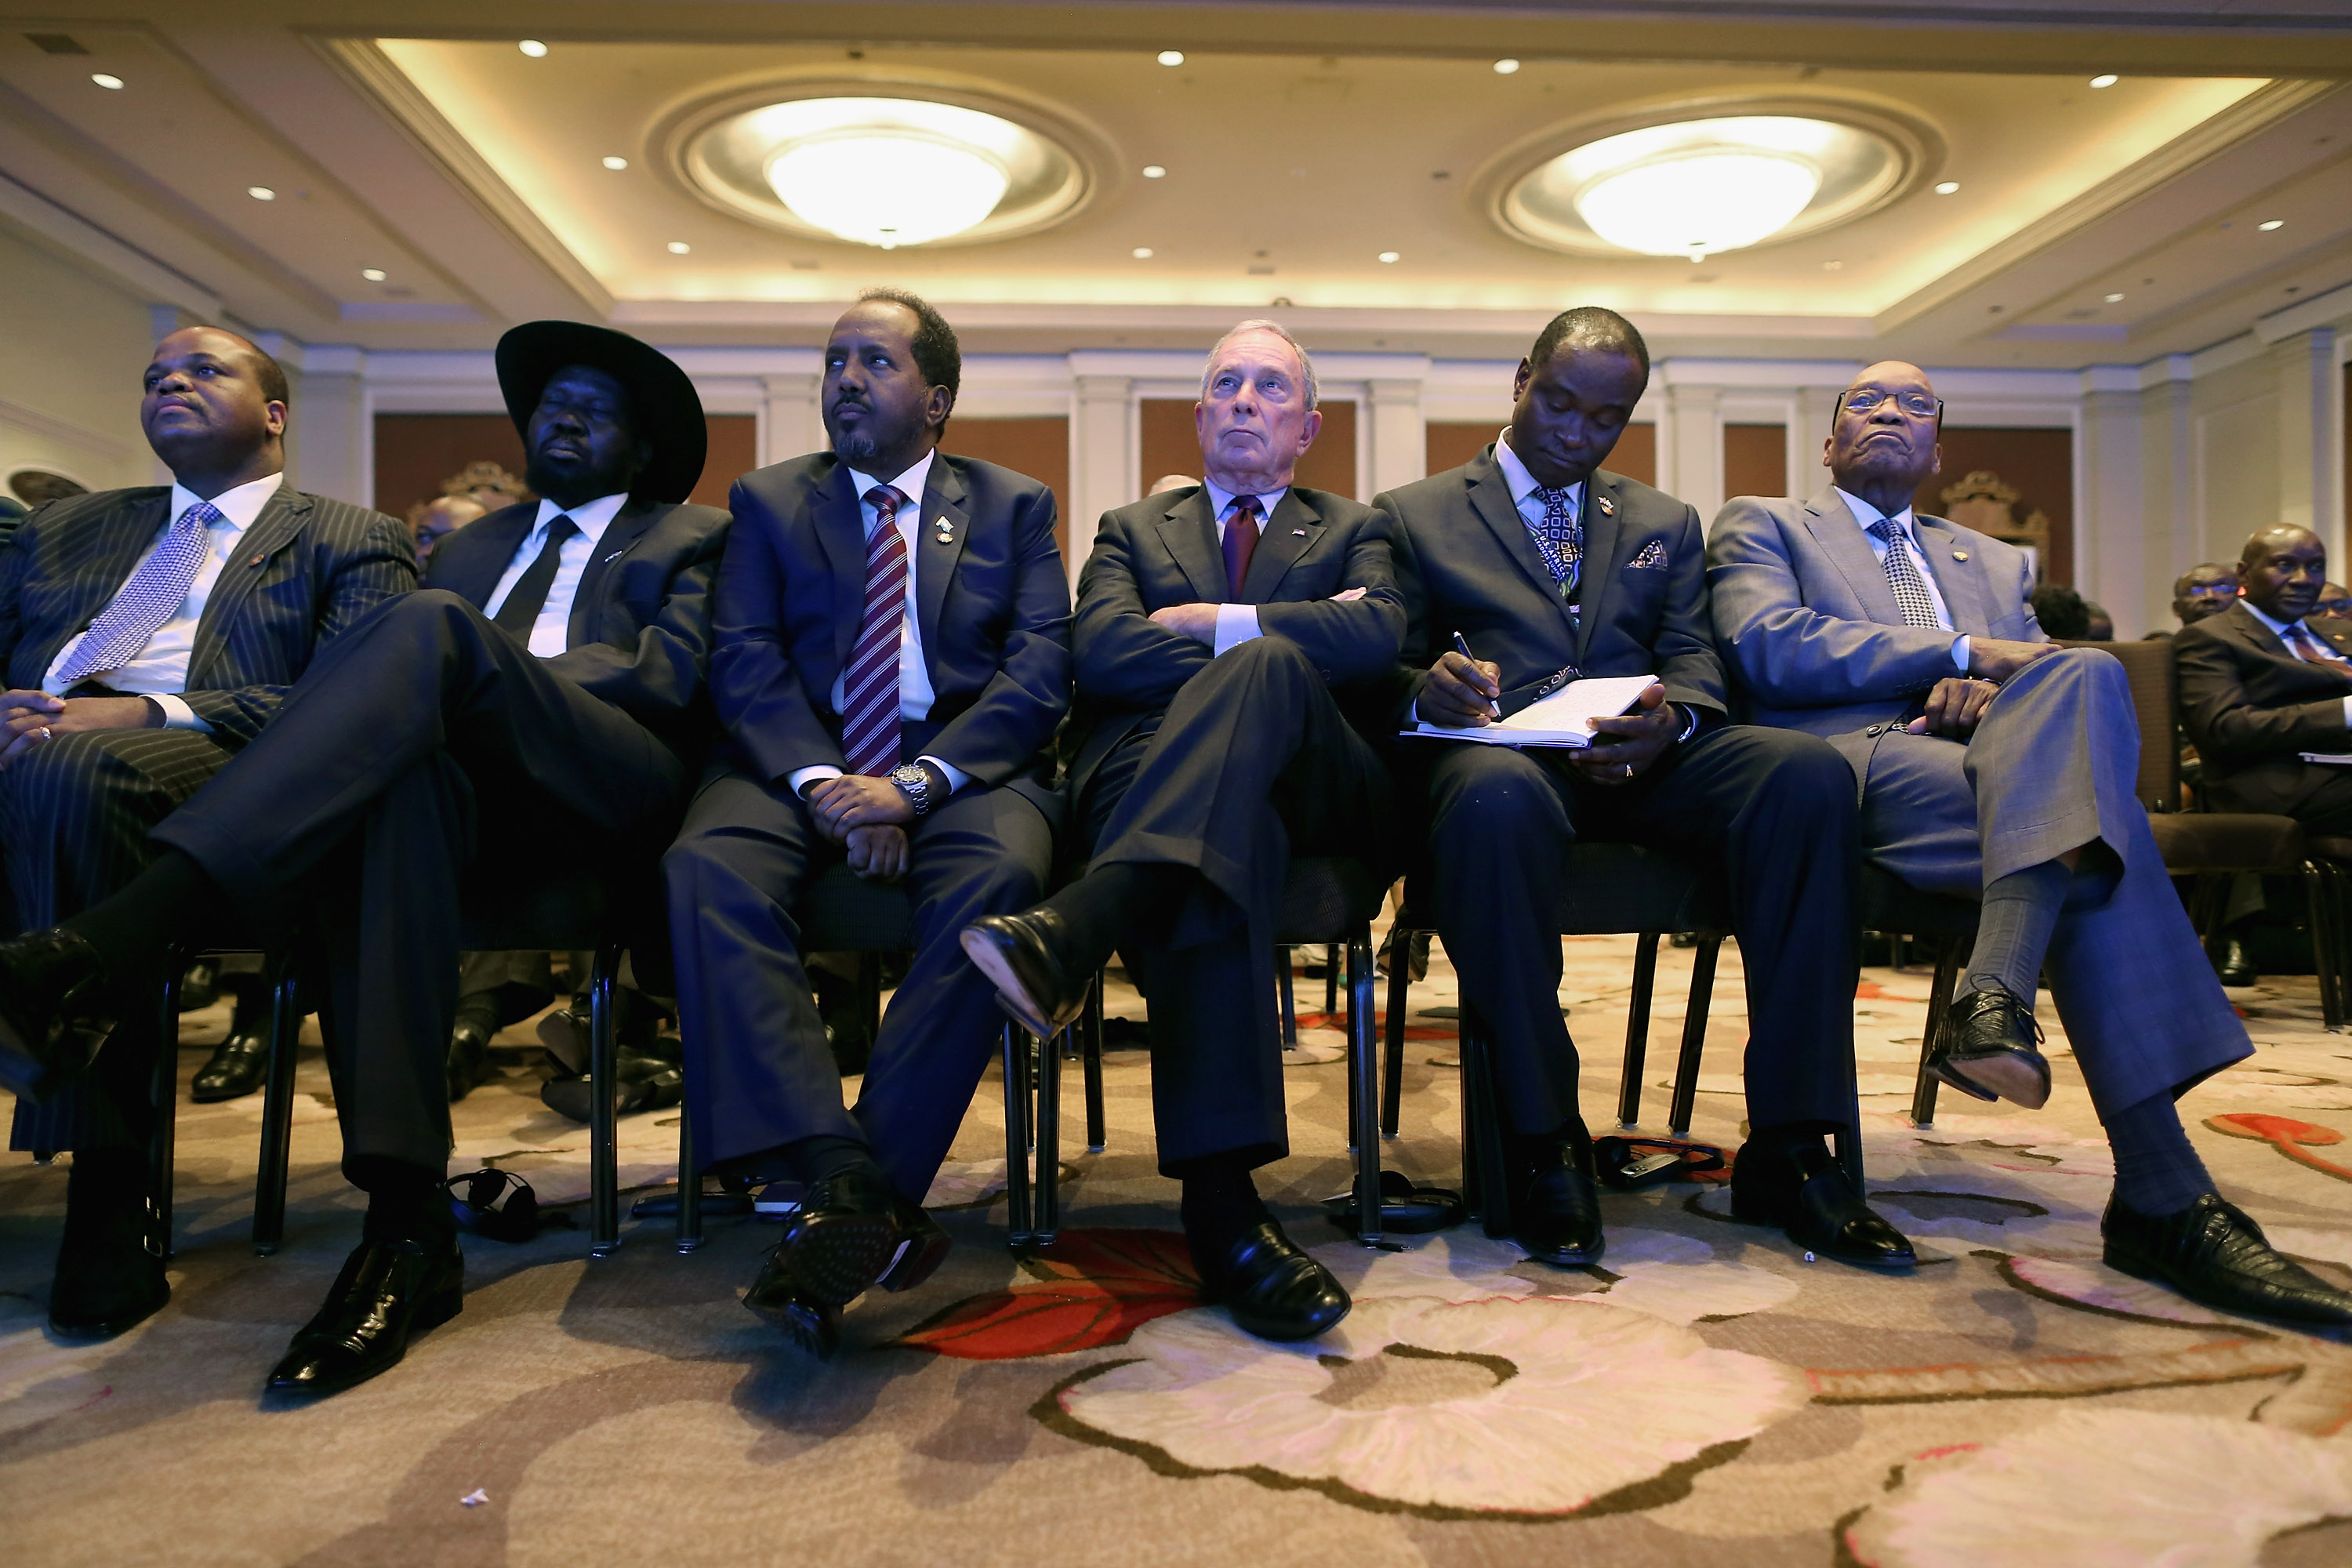 Swaziland King Mswati III, South Sudan President Salva Kiir Mayardit, Djbouti President Ismail Omar Guelleh, Former New York City Mayor Michael Bloomberg, South Africa President Jacob Zuma, left to right, and other African leaders listen to U.S. President Barack Obama deliver closing remarks during the U.S.-Africa Business Forum at the Mandarin Oriental Hotel August 5, 2014 in Washington, DC.